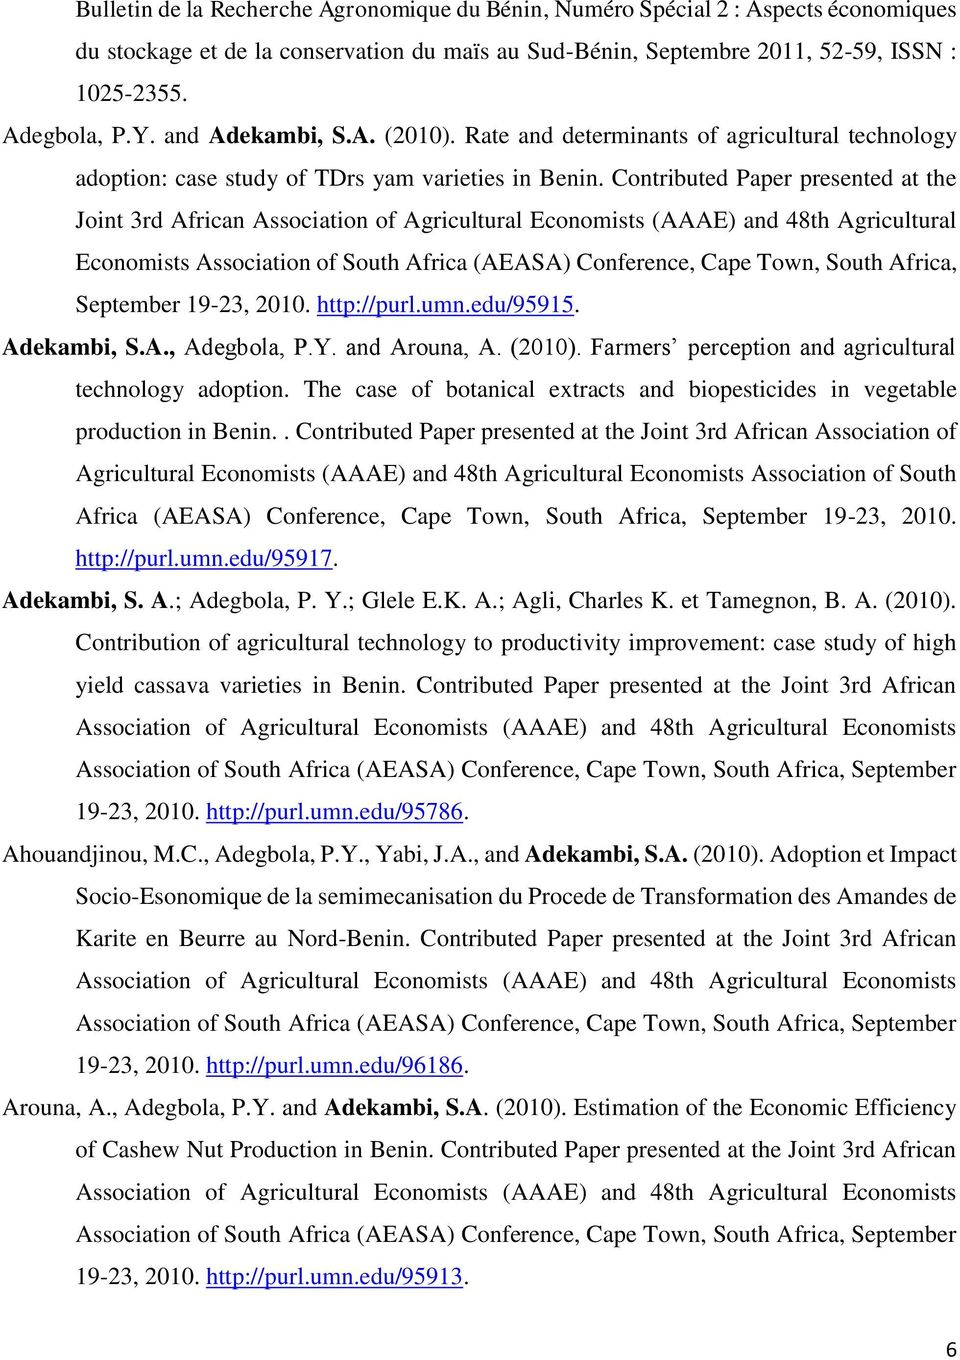 Contributed Paper presented at the Joint 3rd African Association of Agricultural Economists (AAAE) and 48th Agricultural Economists Association of South Africa (AEASA) Conference, Cape Town, South